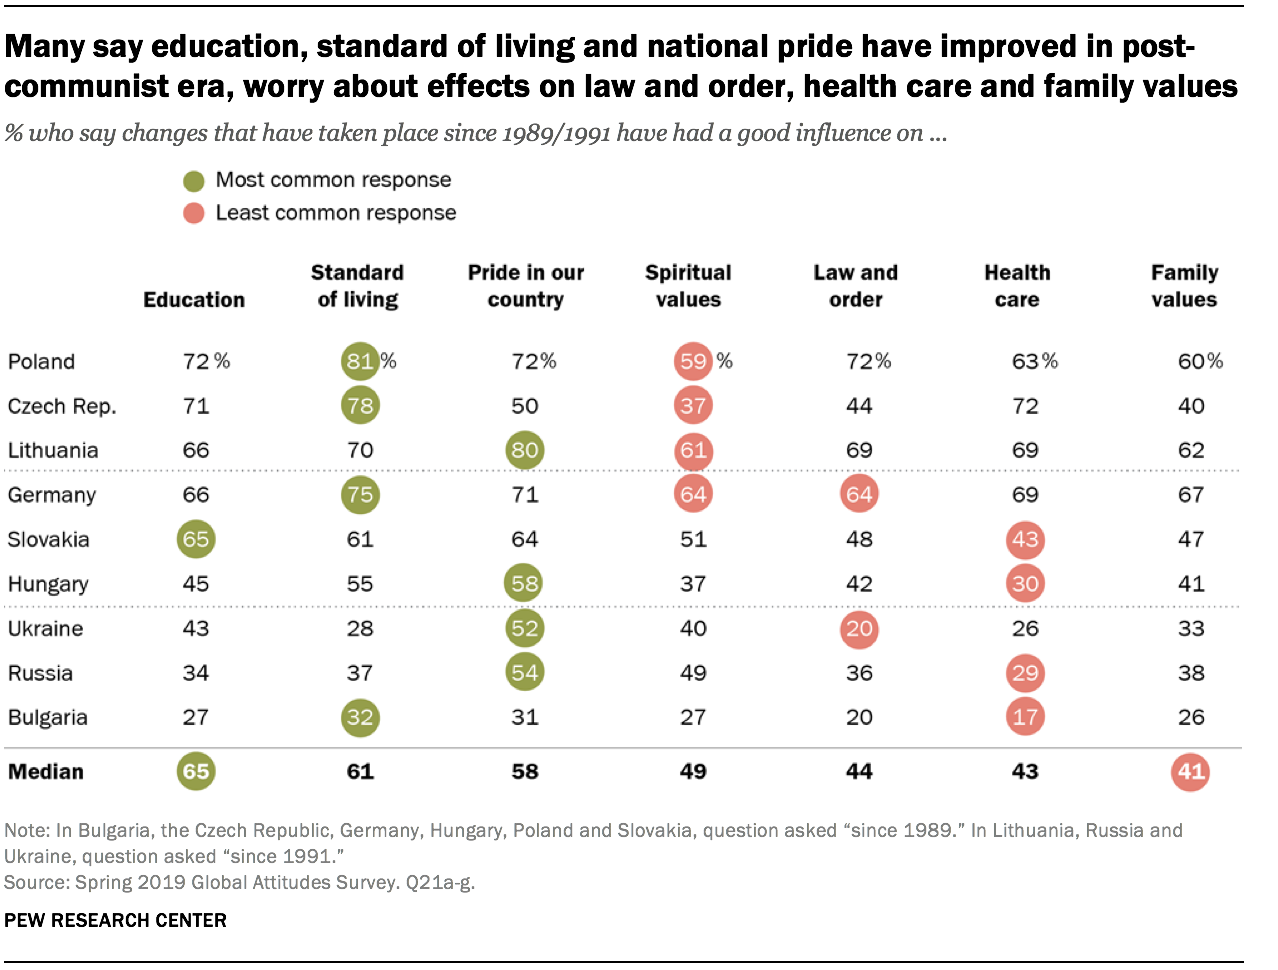 Many say education, standard of living and national pride have improved in post-communist era, worry about effects on law and order, health care and family values